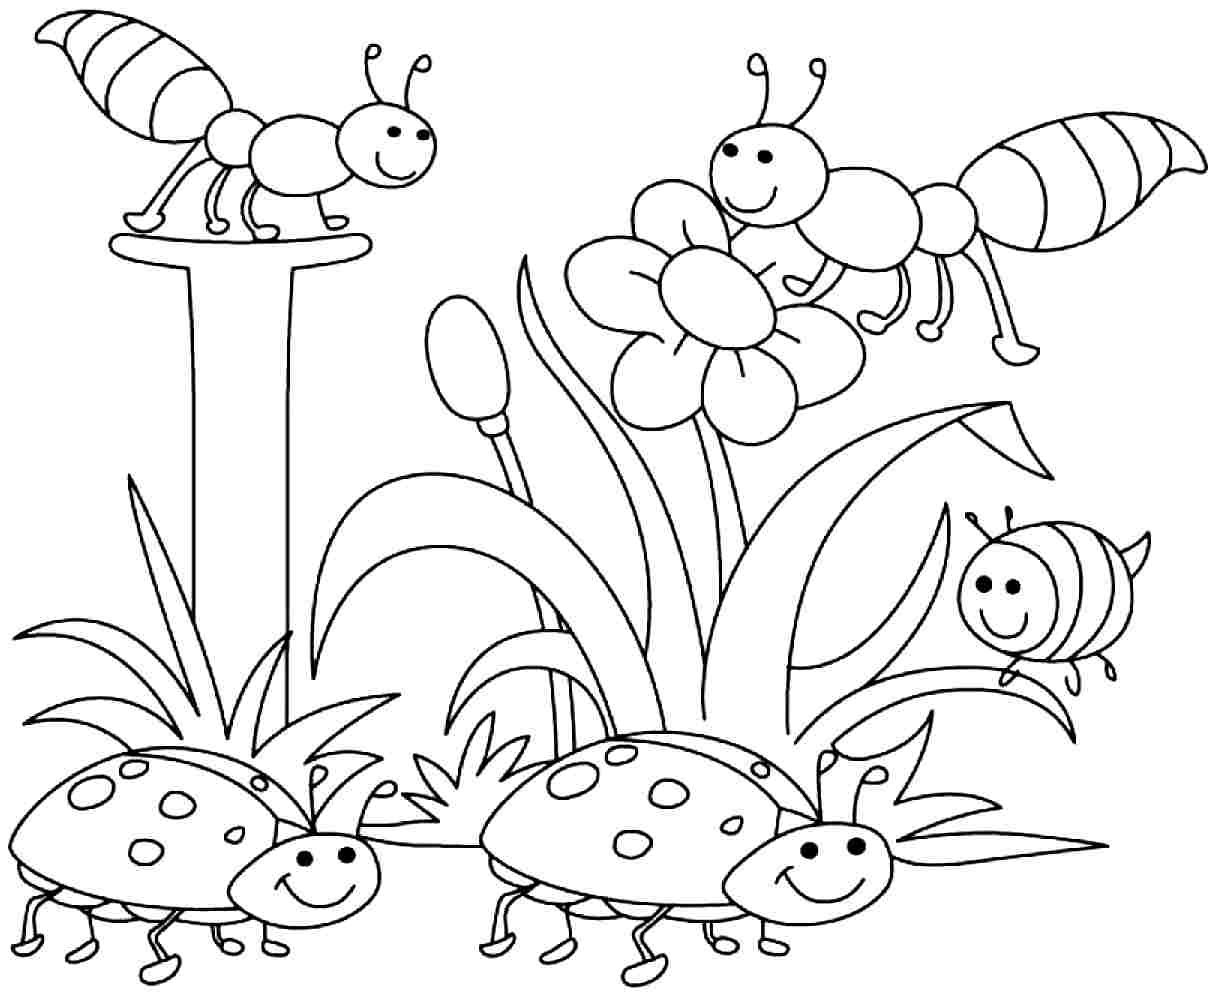 coloring pages bugs a bugs life to print a bugs life kids coloring pages pages bugs coloring